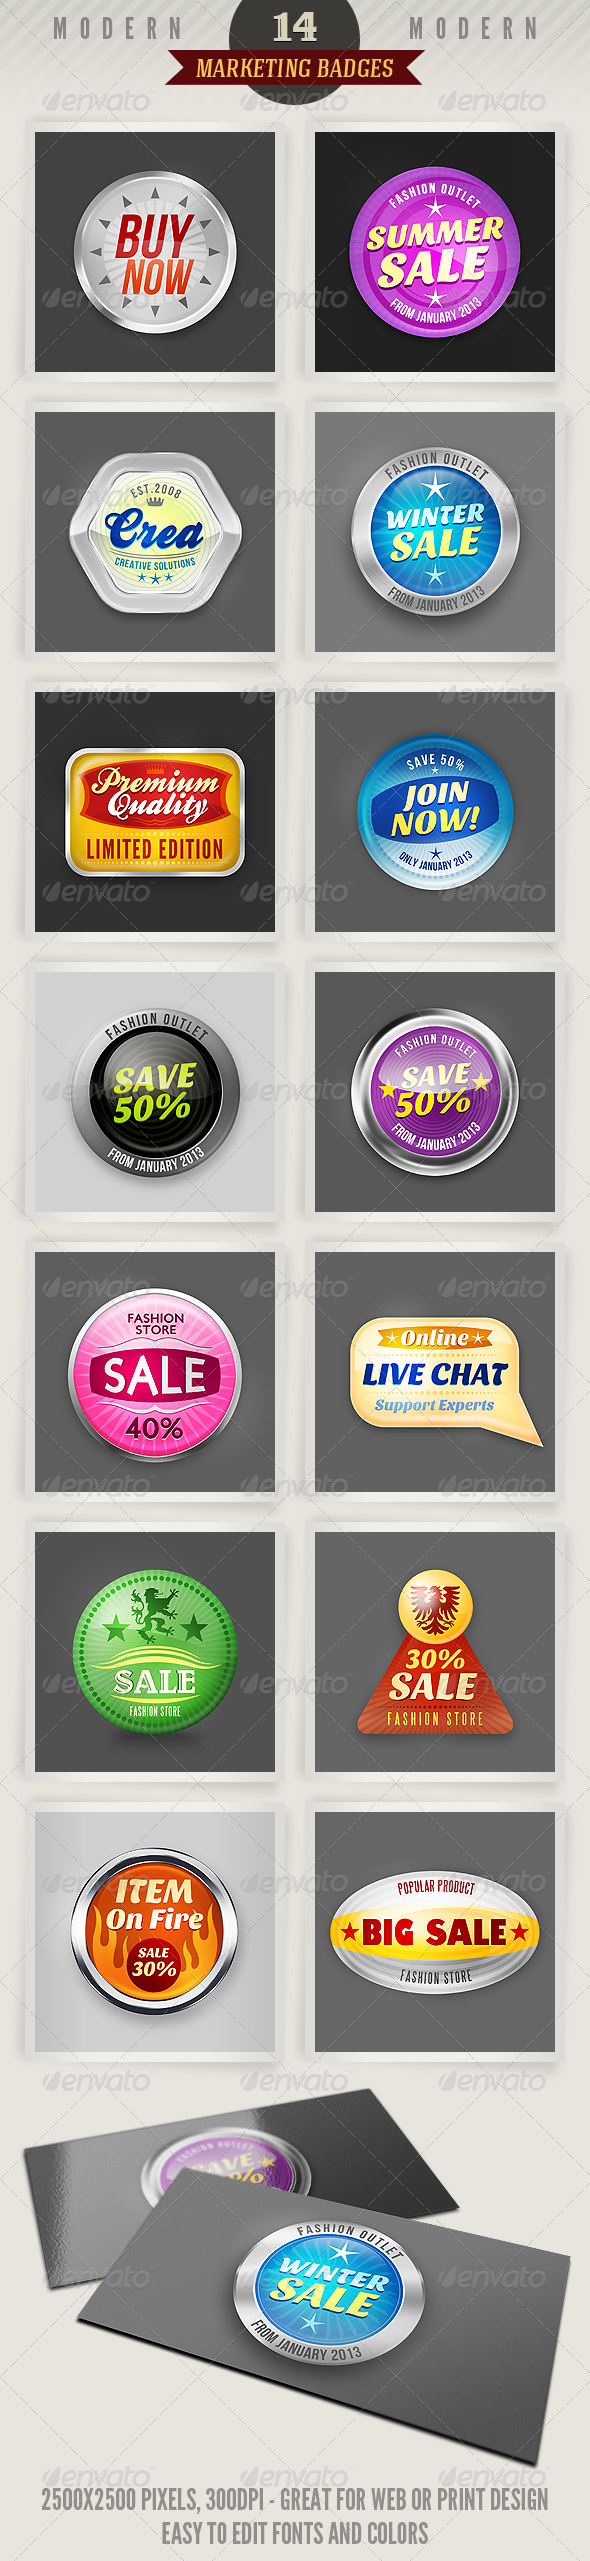 14 Modern Marketing Badges - Badges & Stickers Web Elements